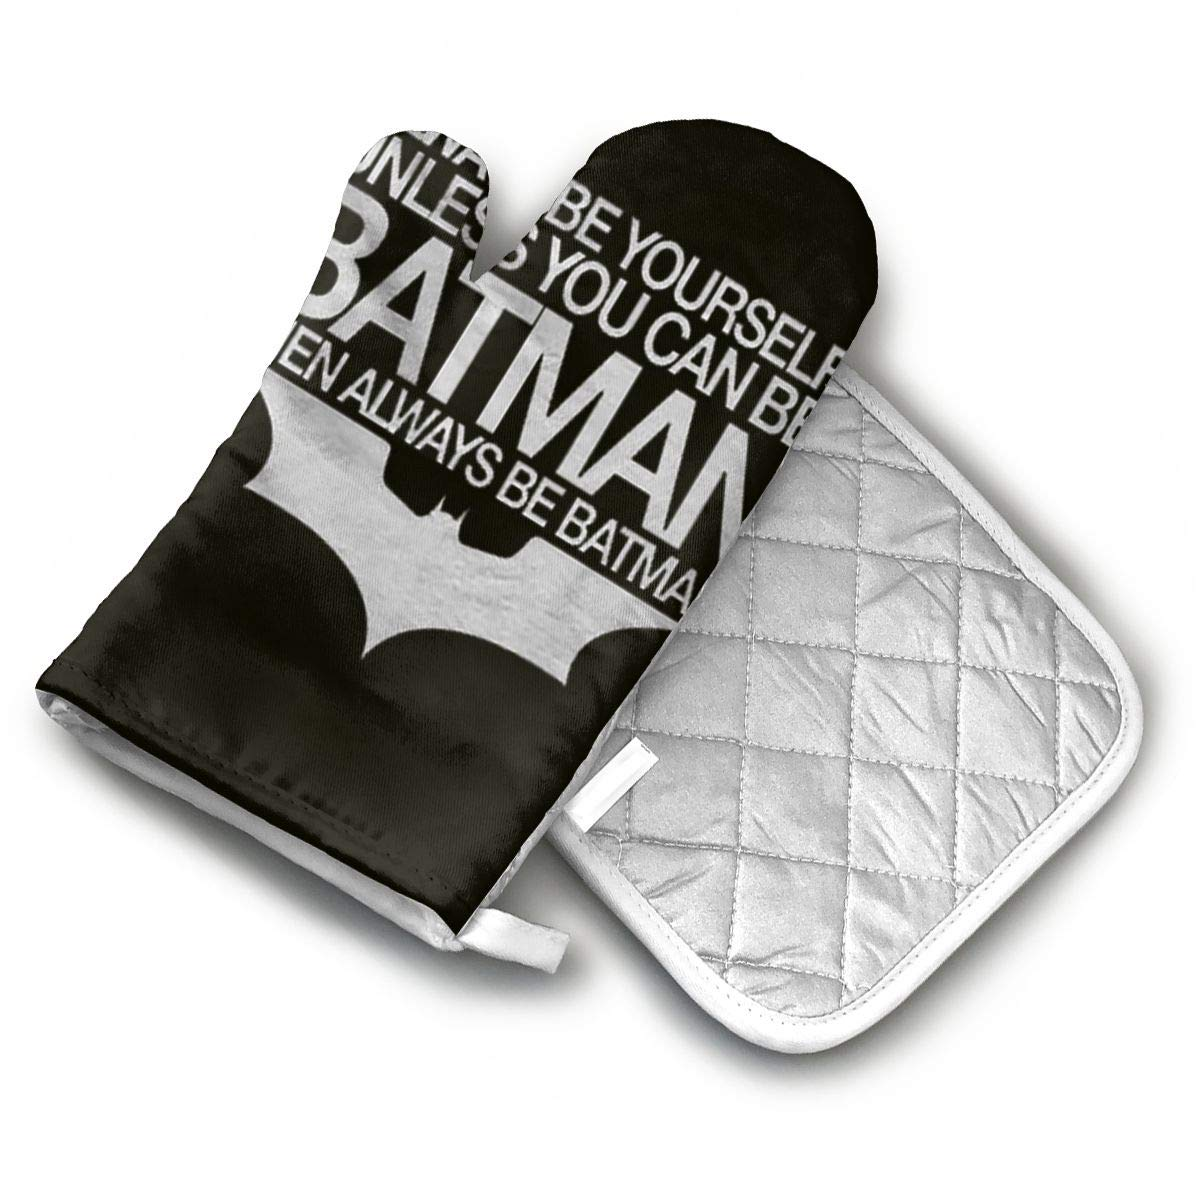 AISDHAJKSD Always Be Yourself Unless You Can Be Batman Then Always Be Batman Premium Terylene/Nylon Oven Mitts and Pot Mat,Pot Mat/Hot Pads, Heat Resistant Gloves BBQ Kitchen